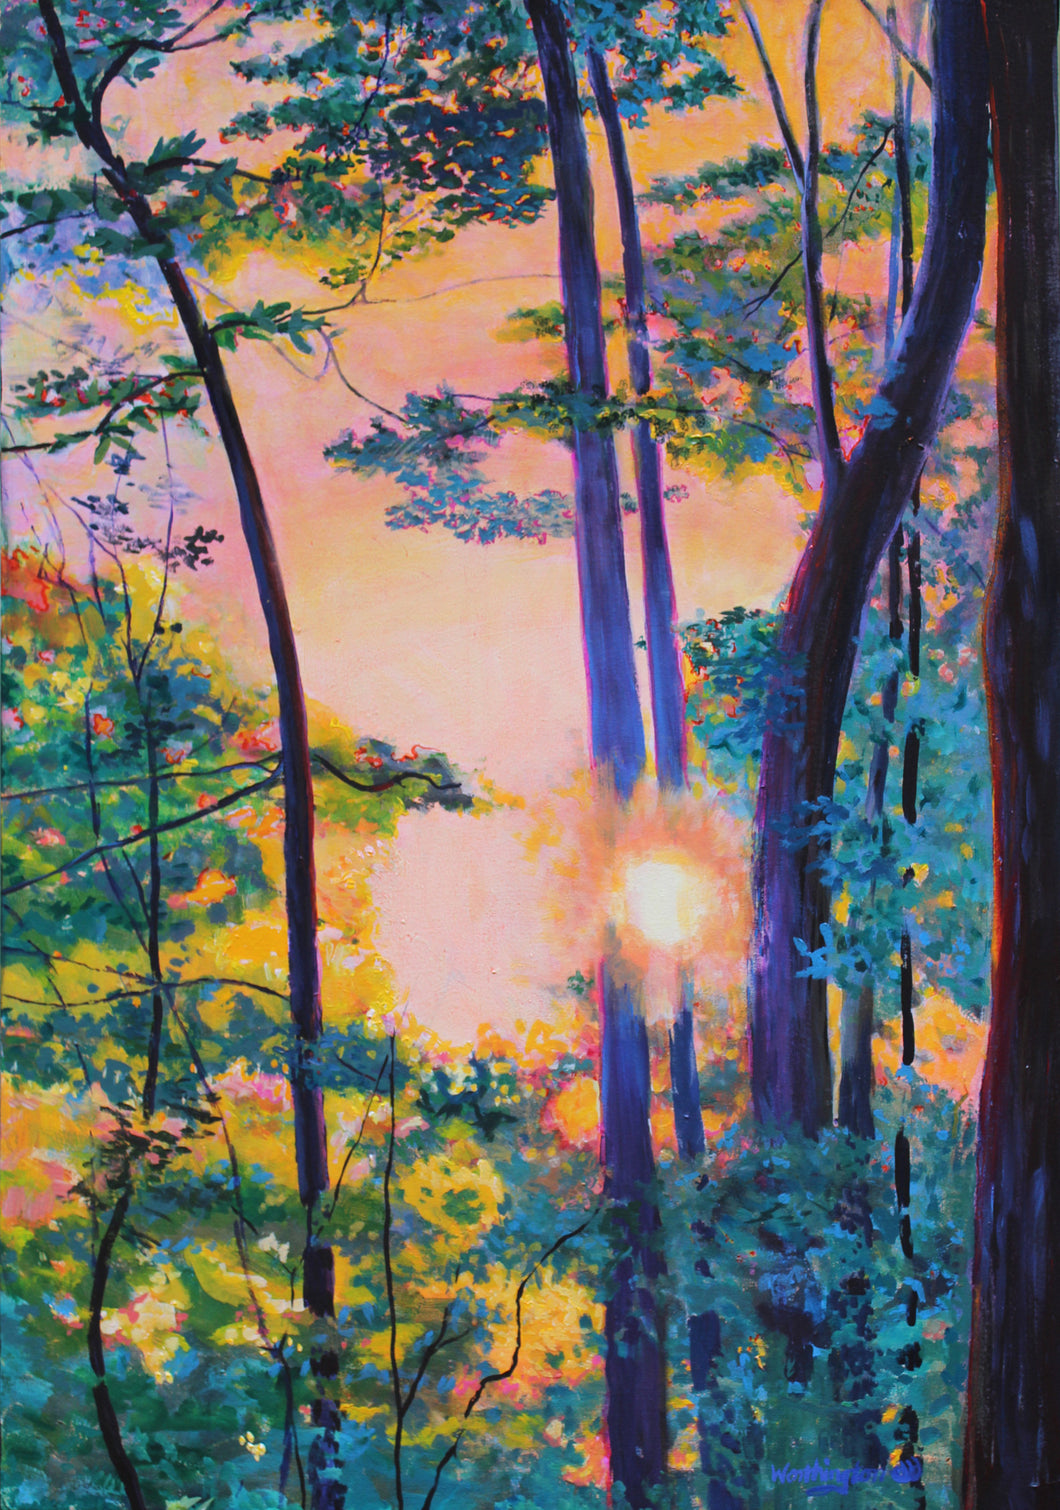 Painting of Sun shinning through colorful trees with a back lit glow